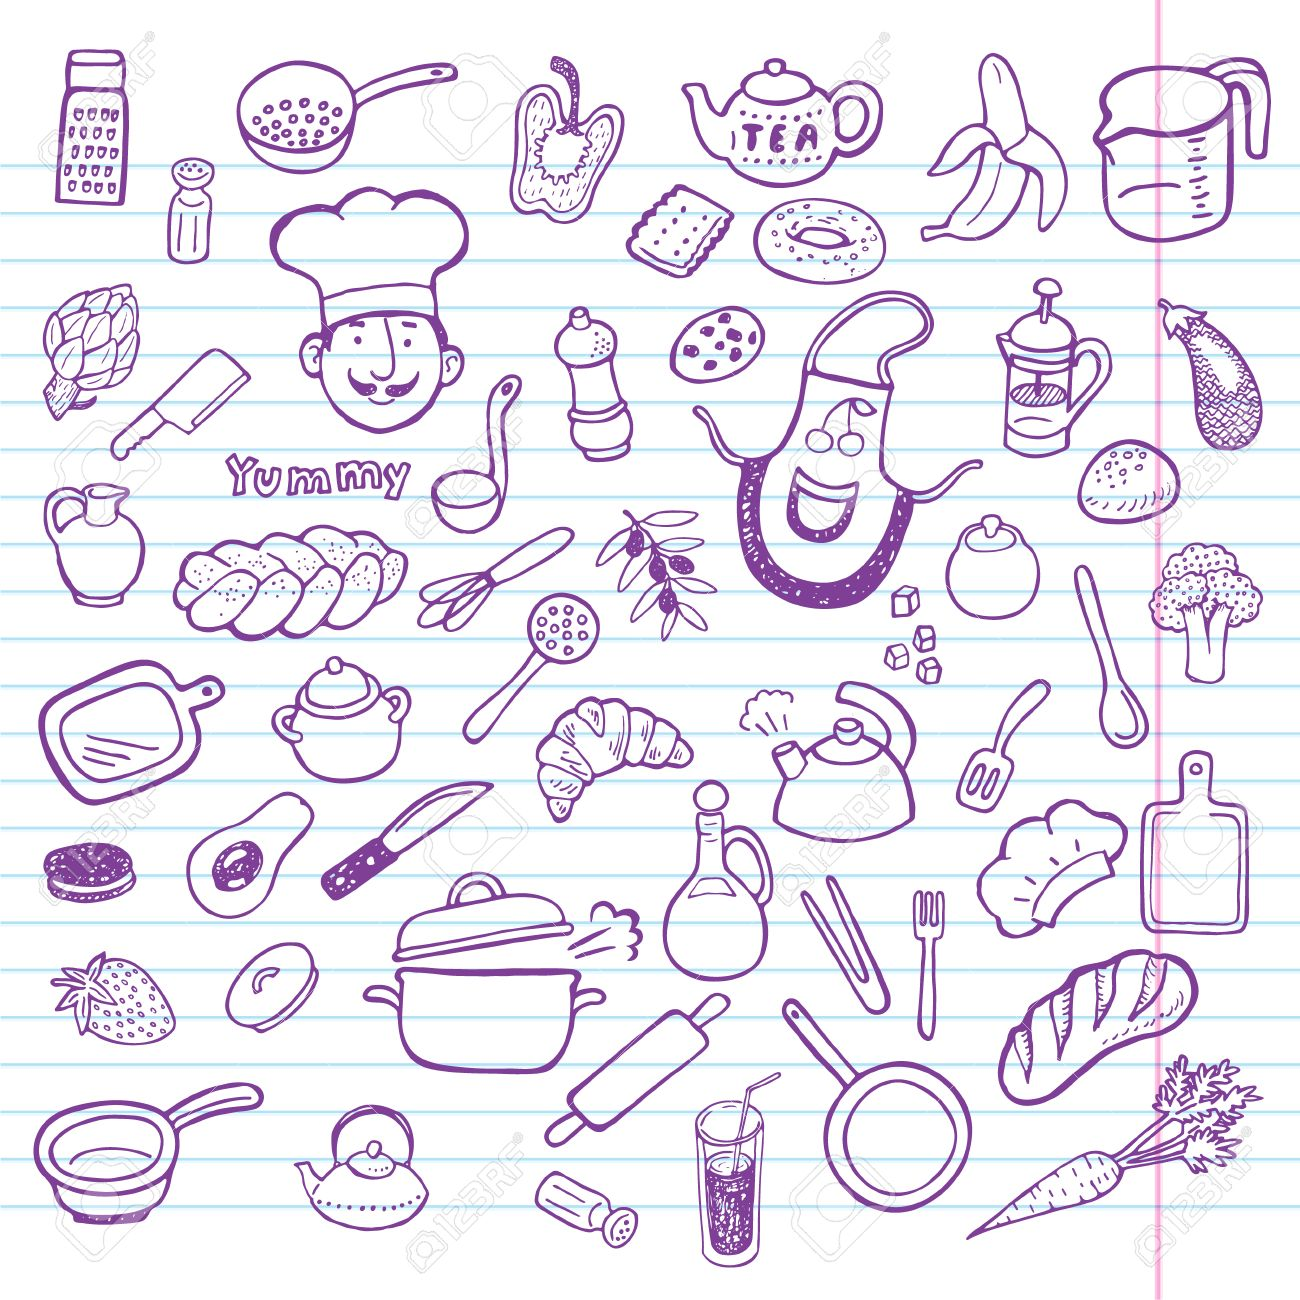 Hand Drawn Cooking And Kitchen Set Royalty Free Cliparts Vectors